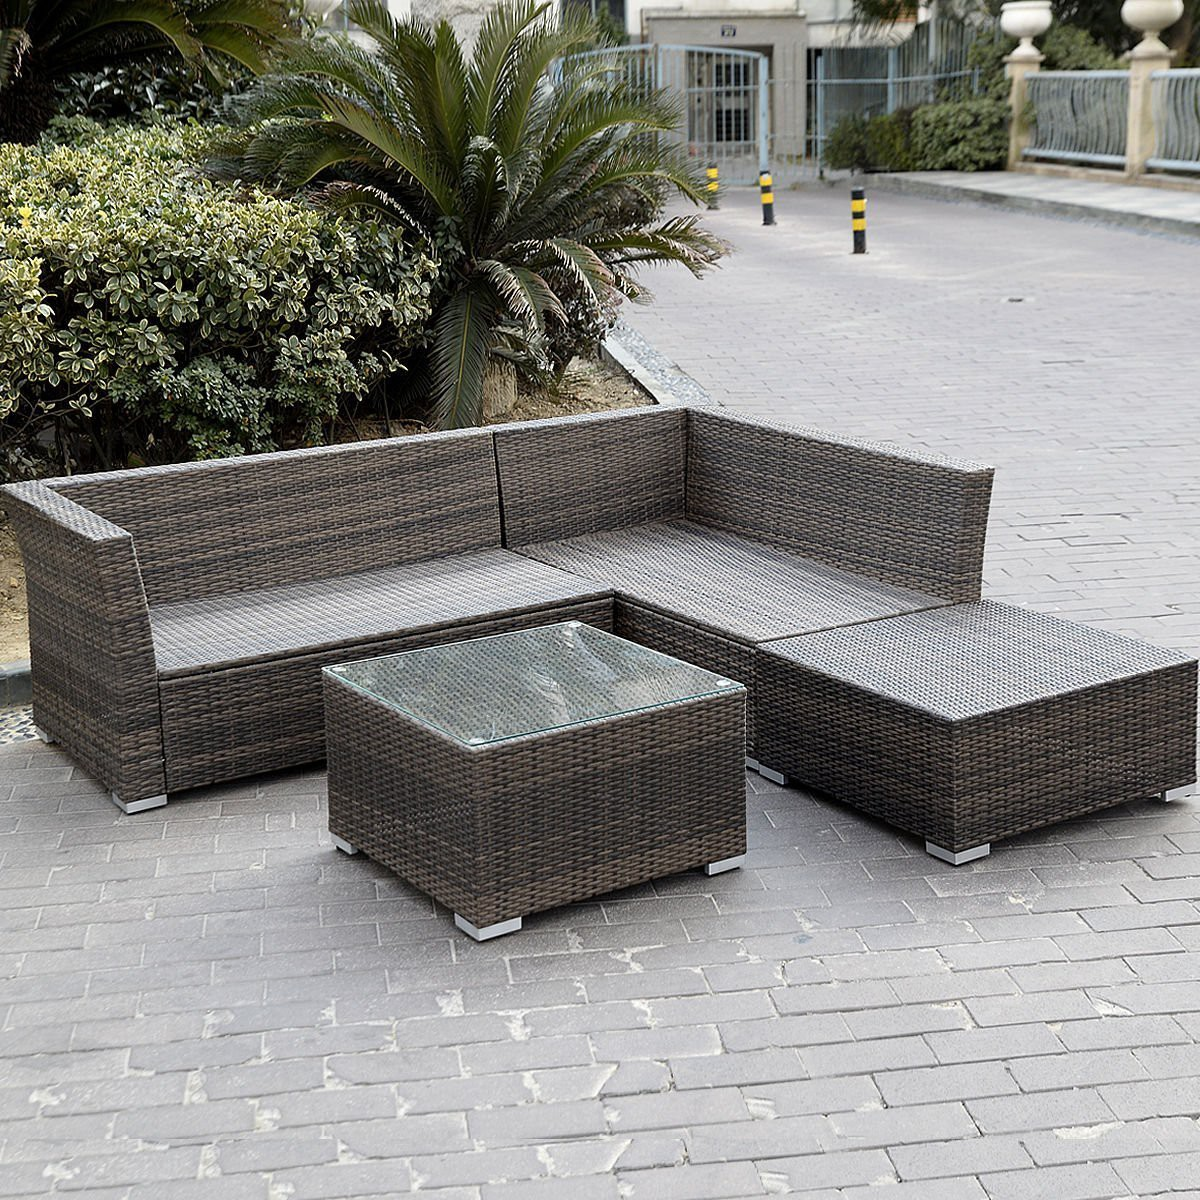 Outdoor Rattan Sofa Giantex 4pc Wicker Rattan Outdoor Sectional Sofa Set